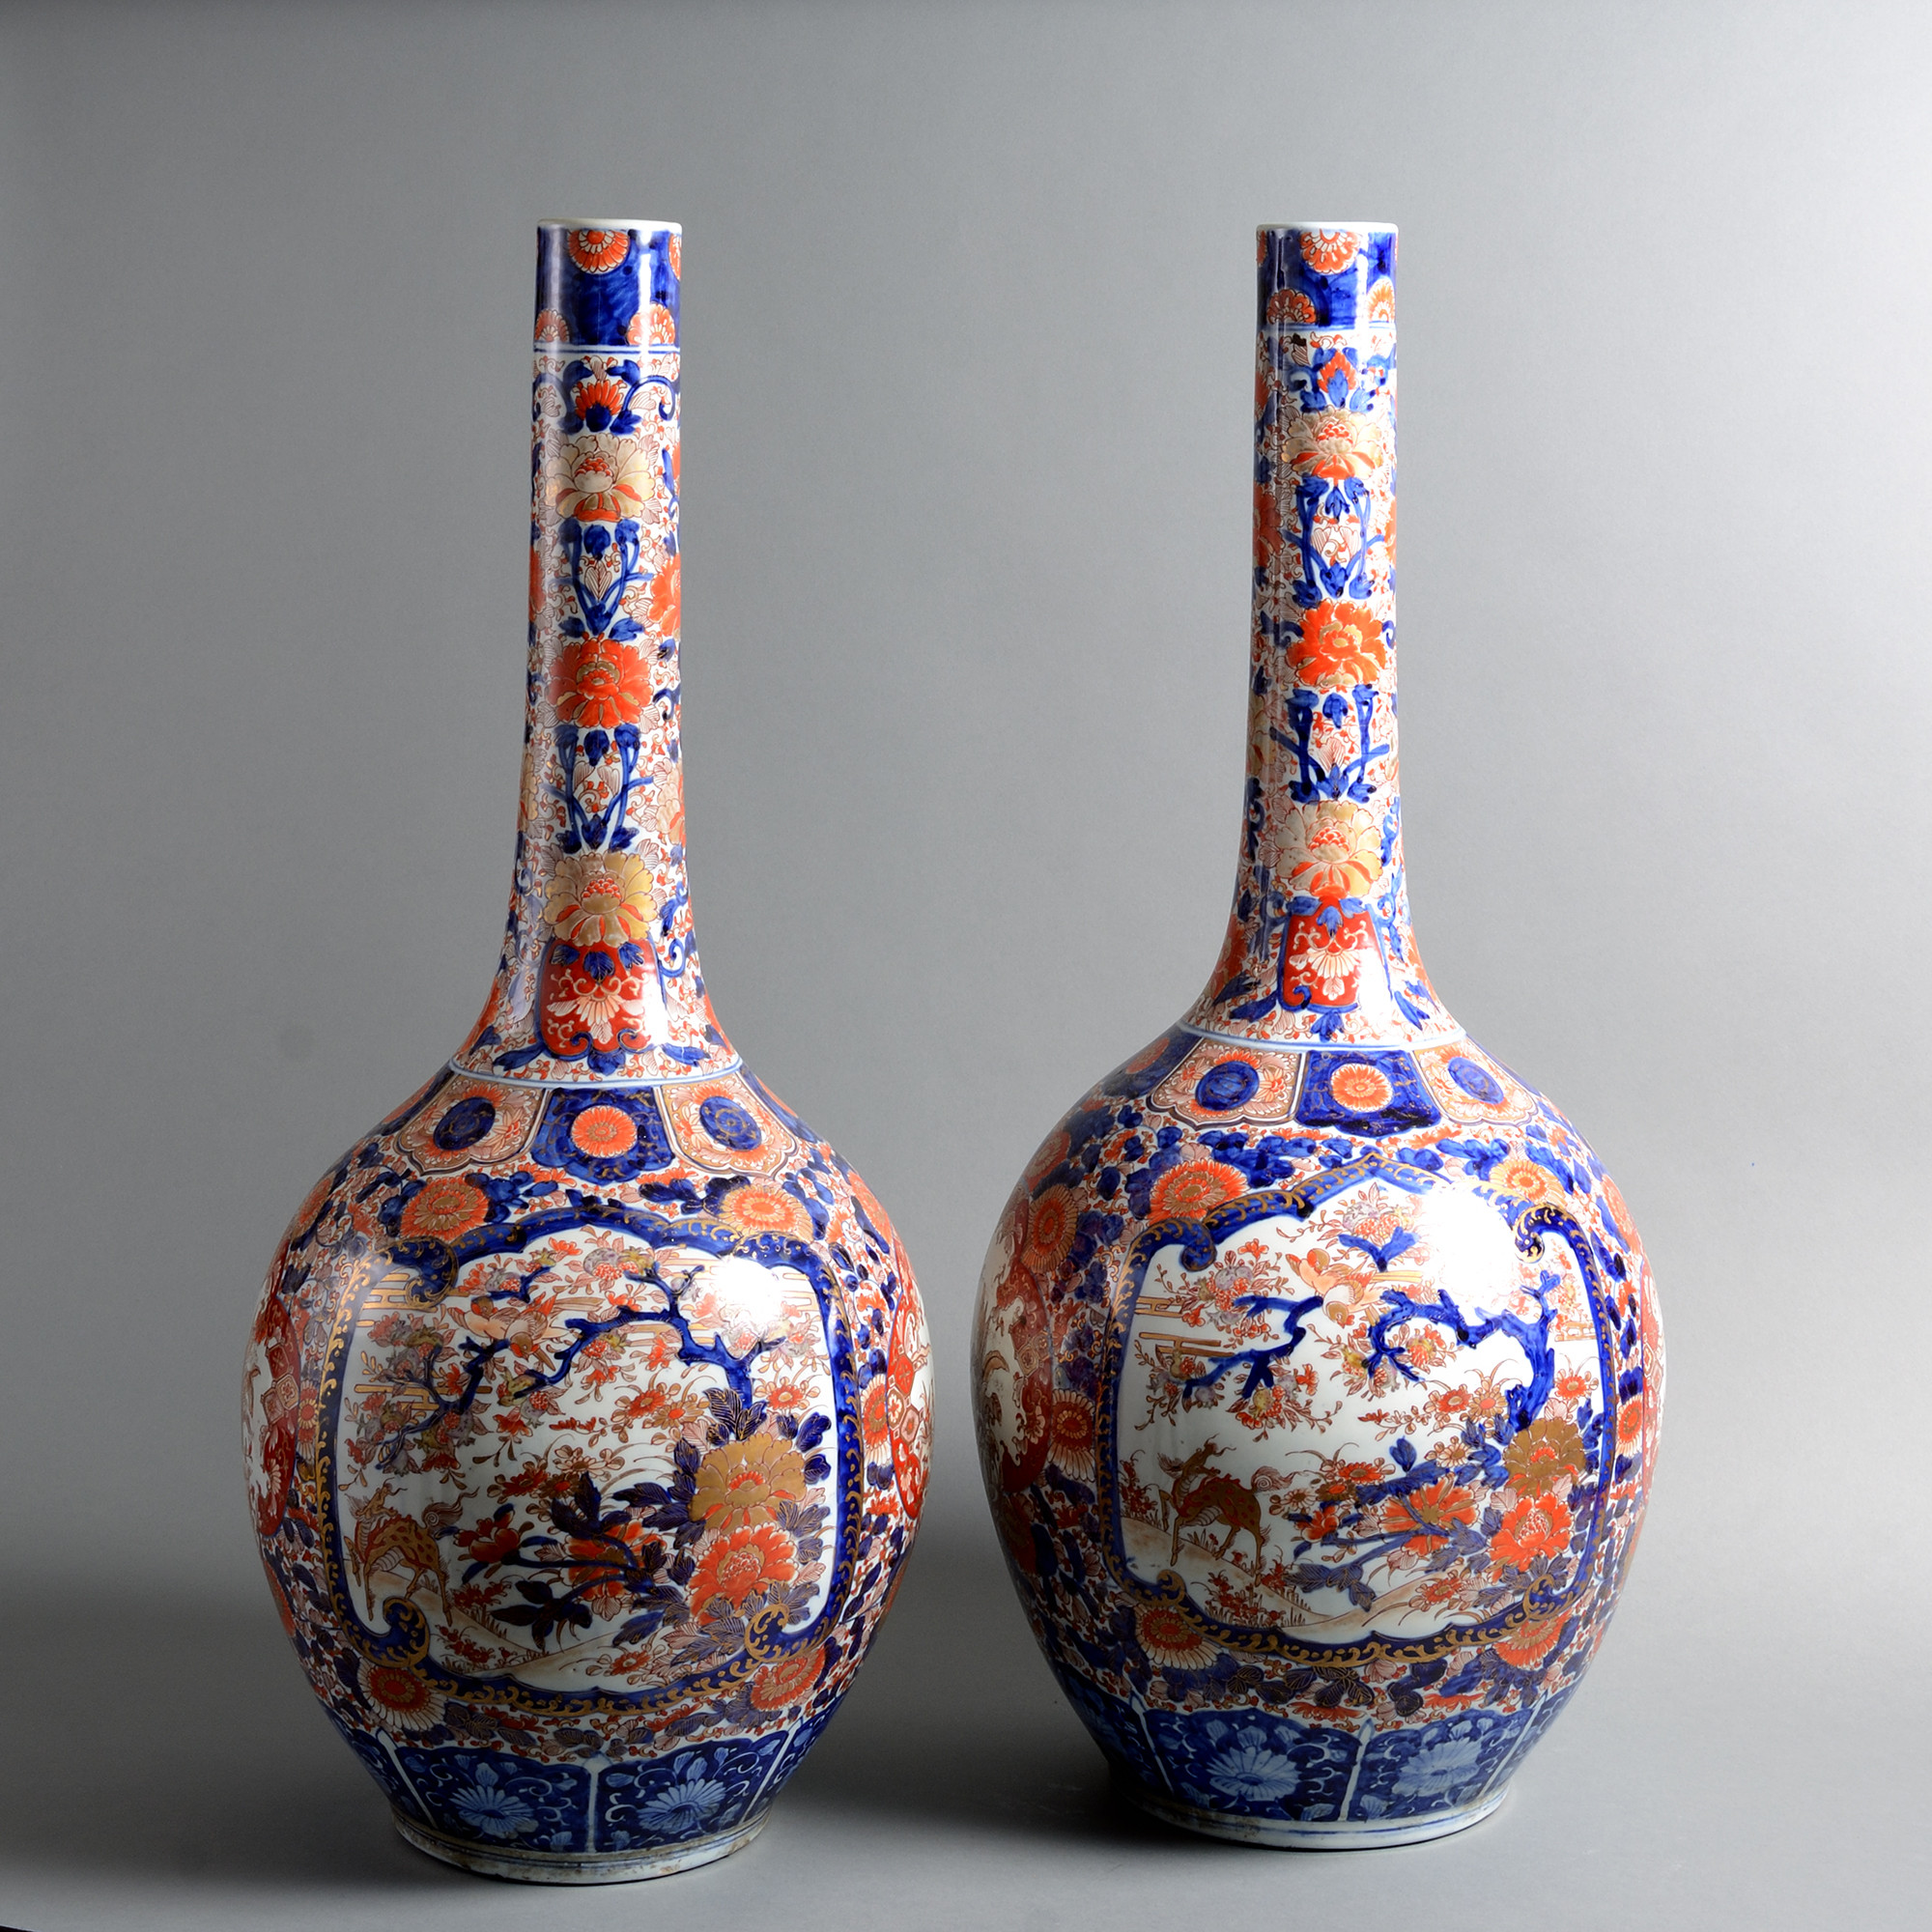 A Tall Pair of 19th Century Imari Bottle Vases